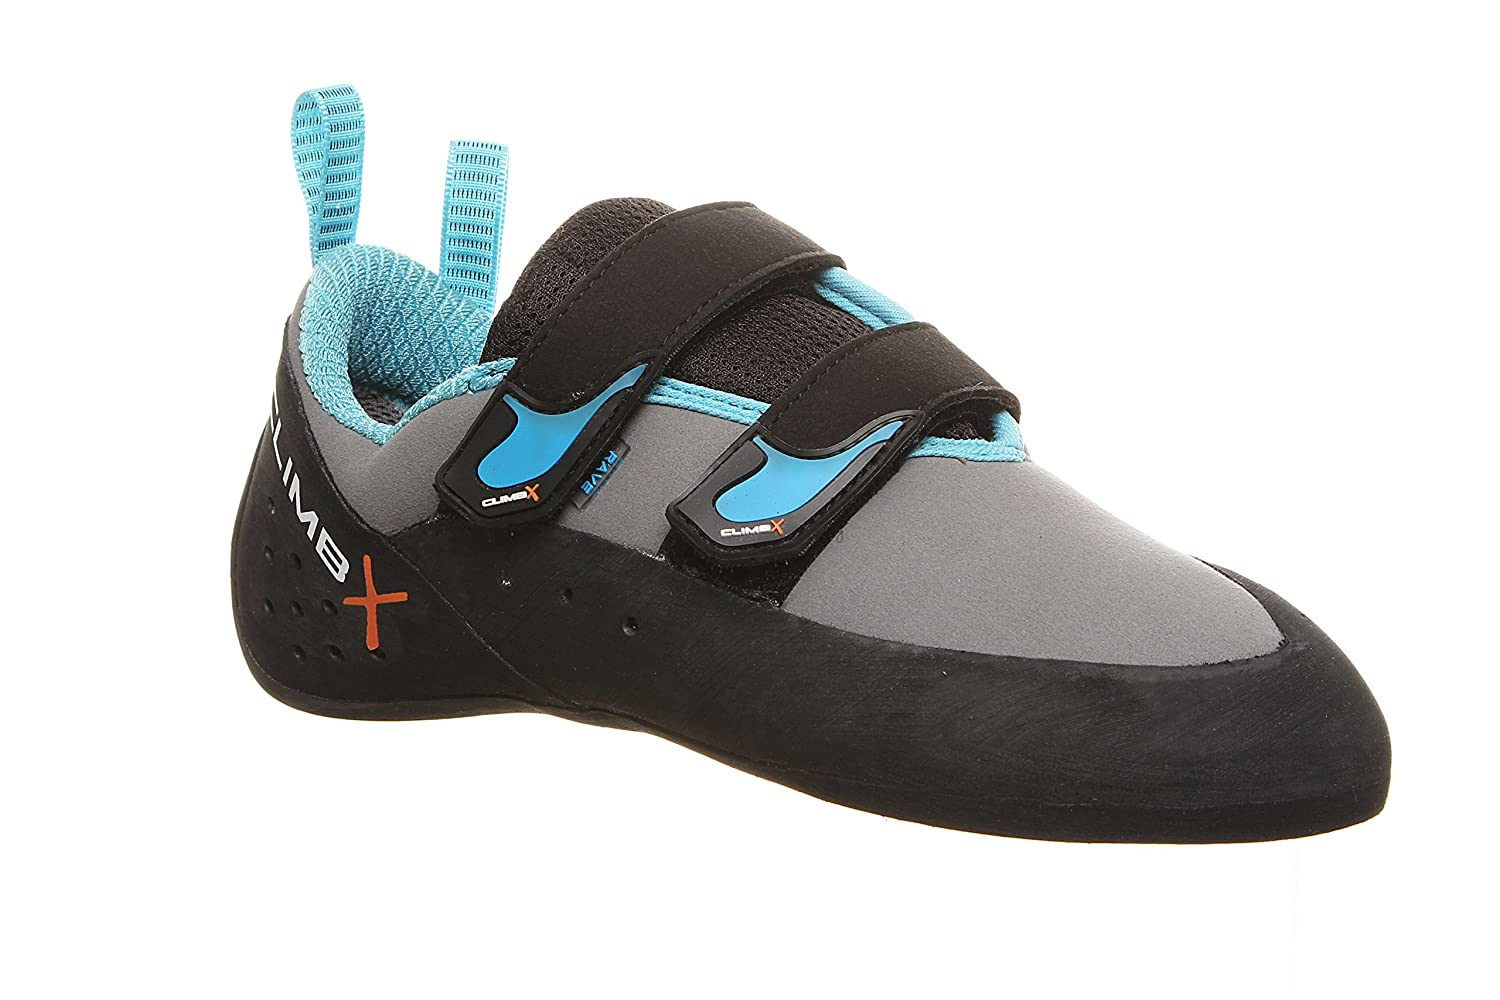 Climb X Rave 2.0 Climbing Shoe with Free Sickle M-16 Climbing Brush